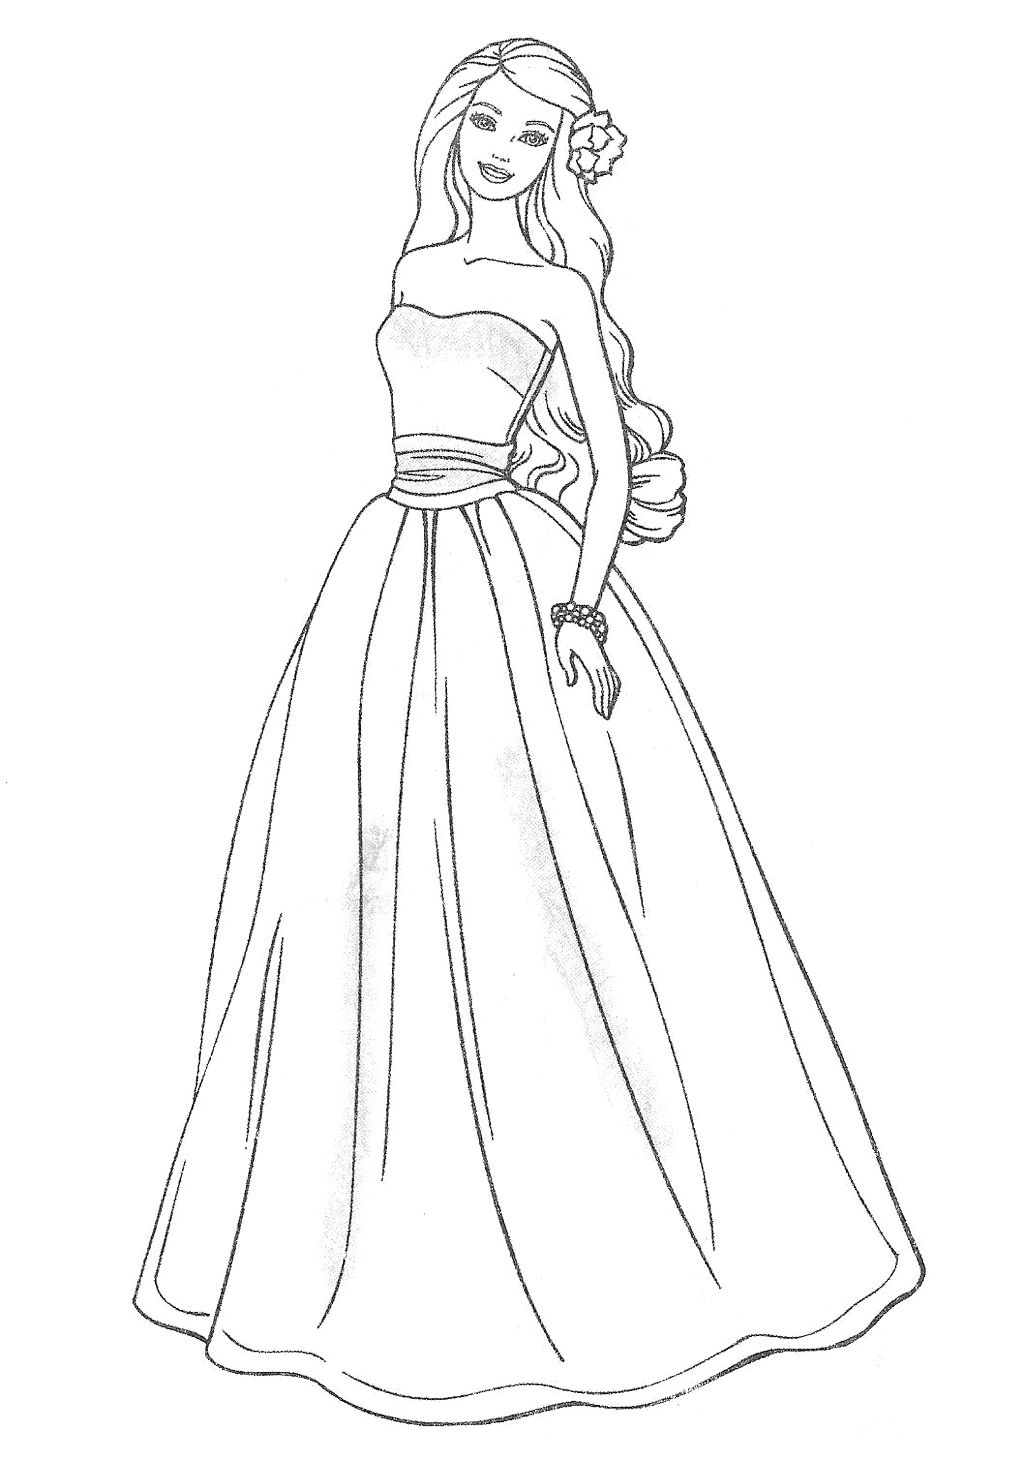 Barbie Doll Wearing A Party Dress Coloring Pages With